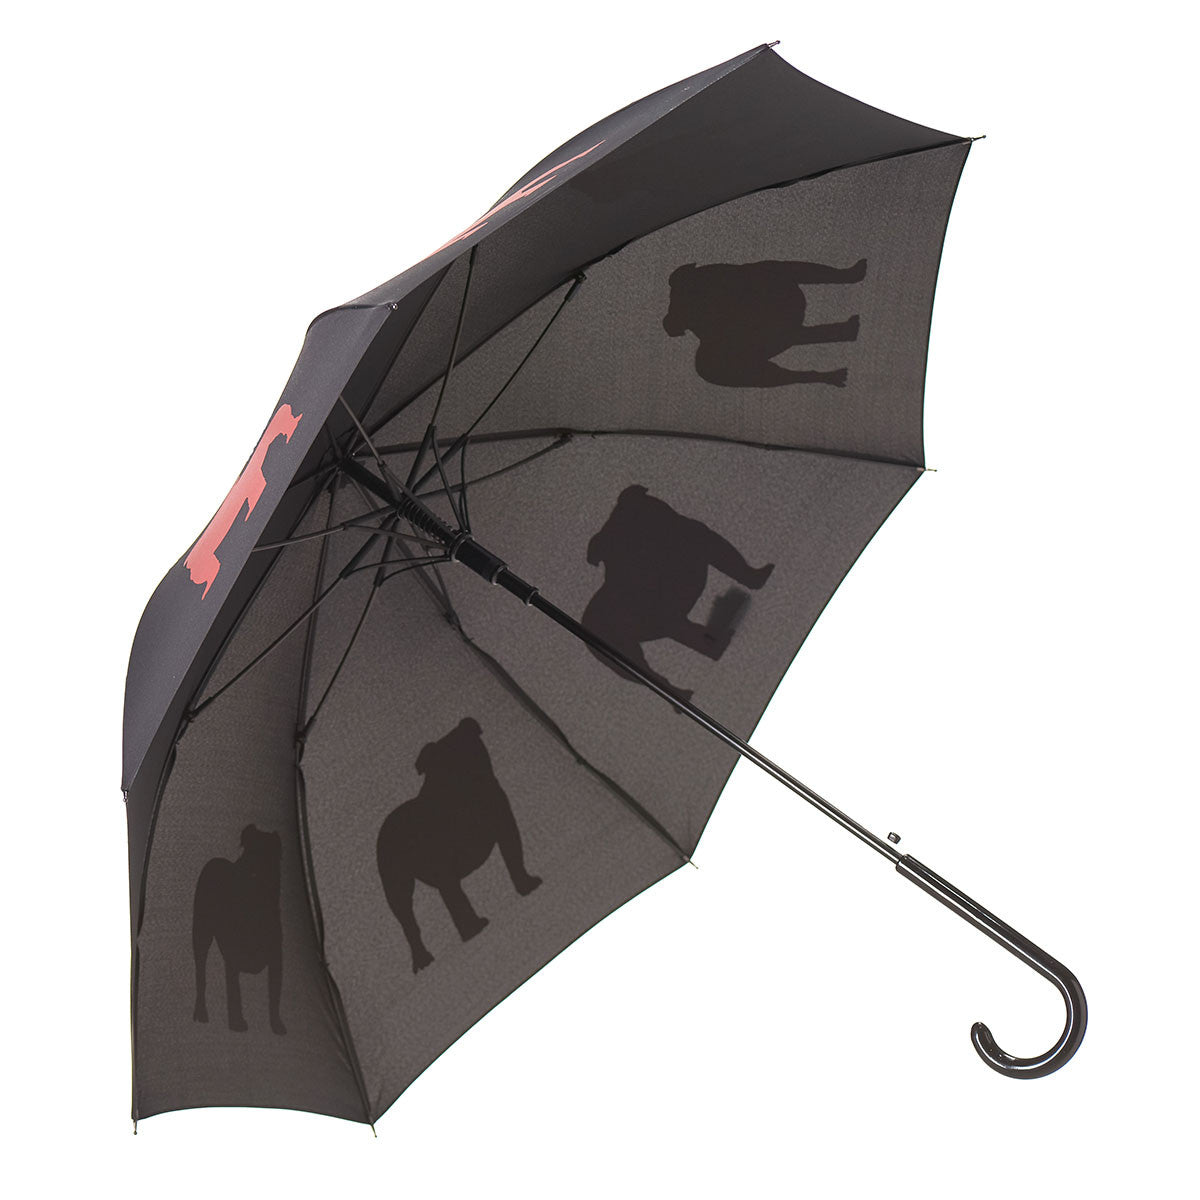 English Bulldog Umbrella Auto Open Premium Quality Red on Black w/ Sleeve and Shoulder Strap